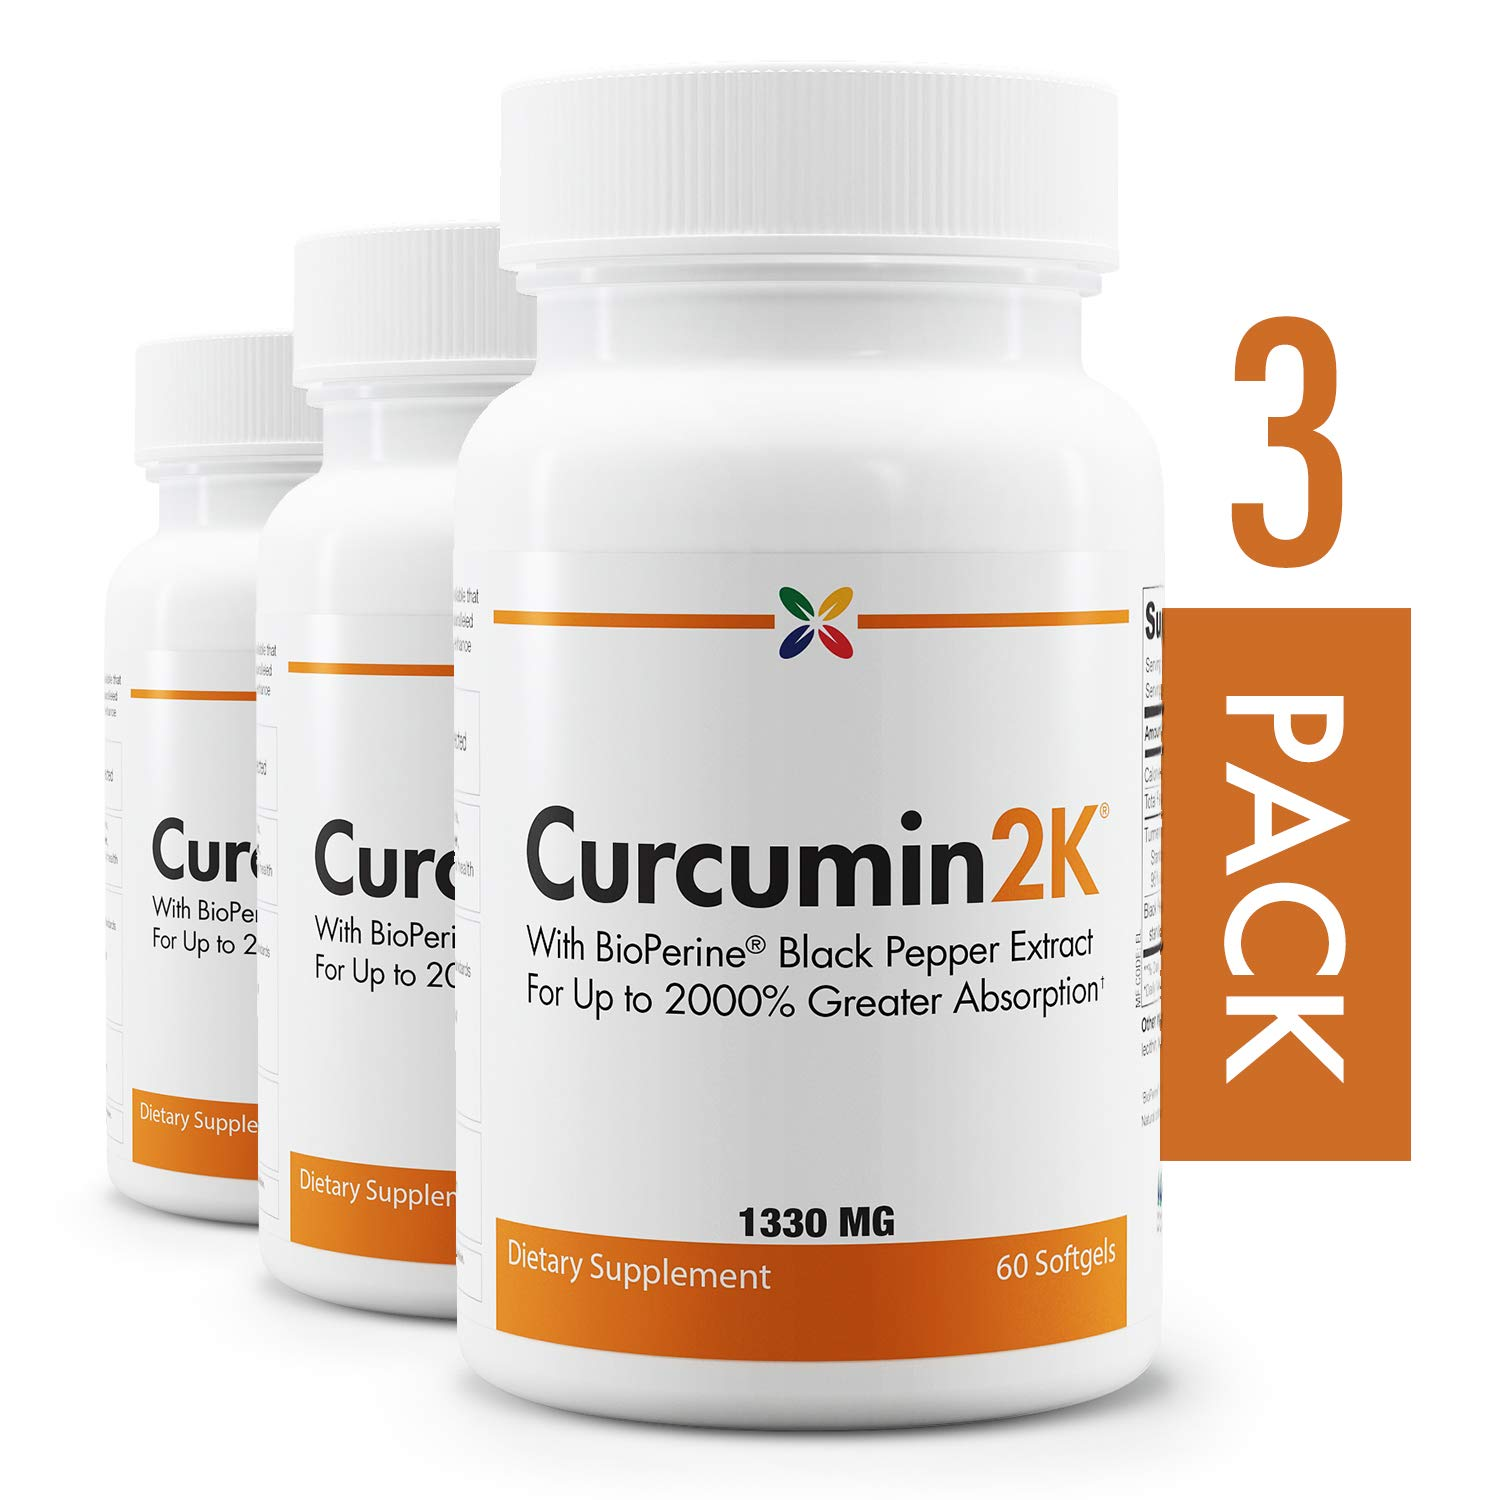 3-Bottle Pack - Curcumin2K Formula with BioPerine Black Pepper Extract for Up to 2000% Greater Absorption - Stop Aging Now - 60 Veggie Caps